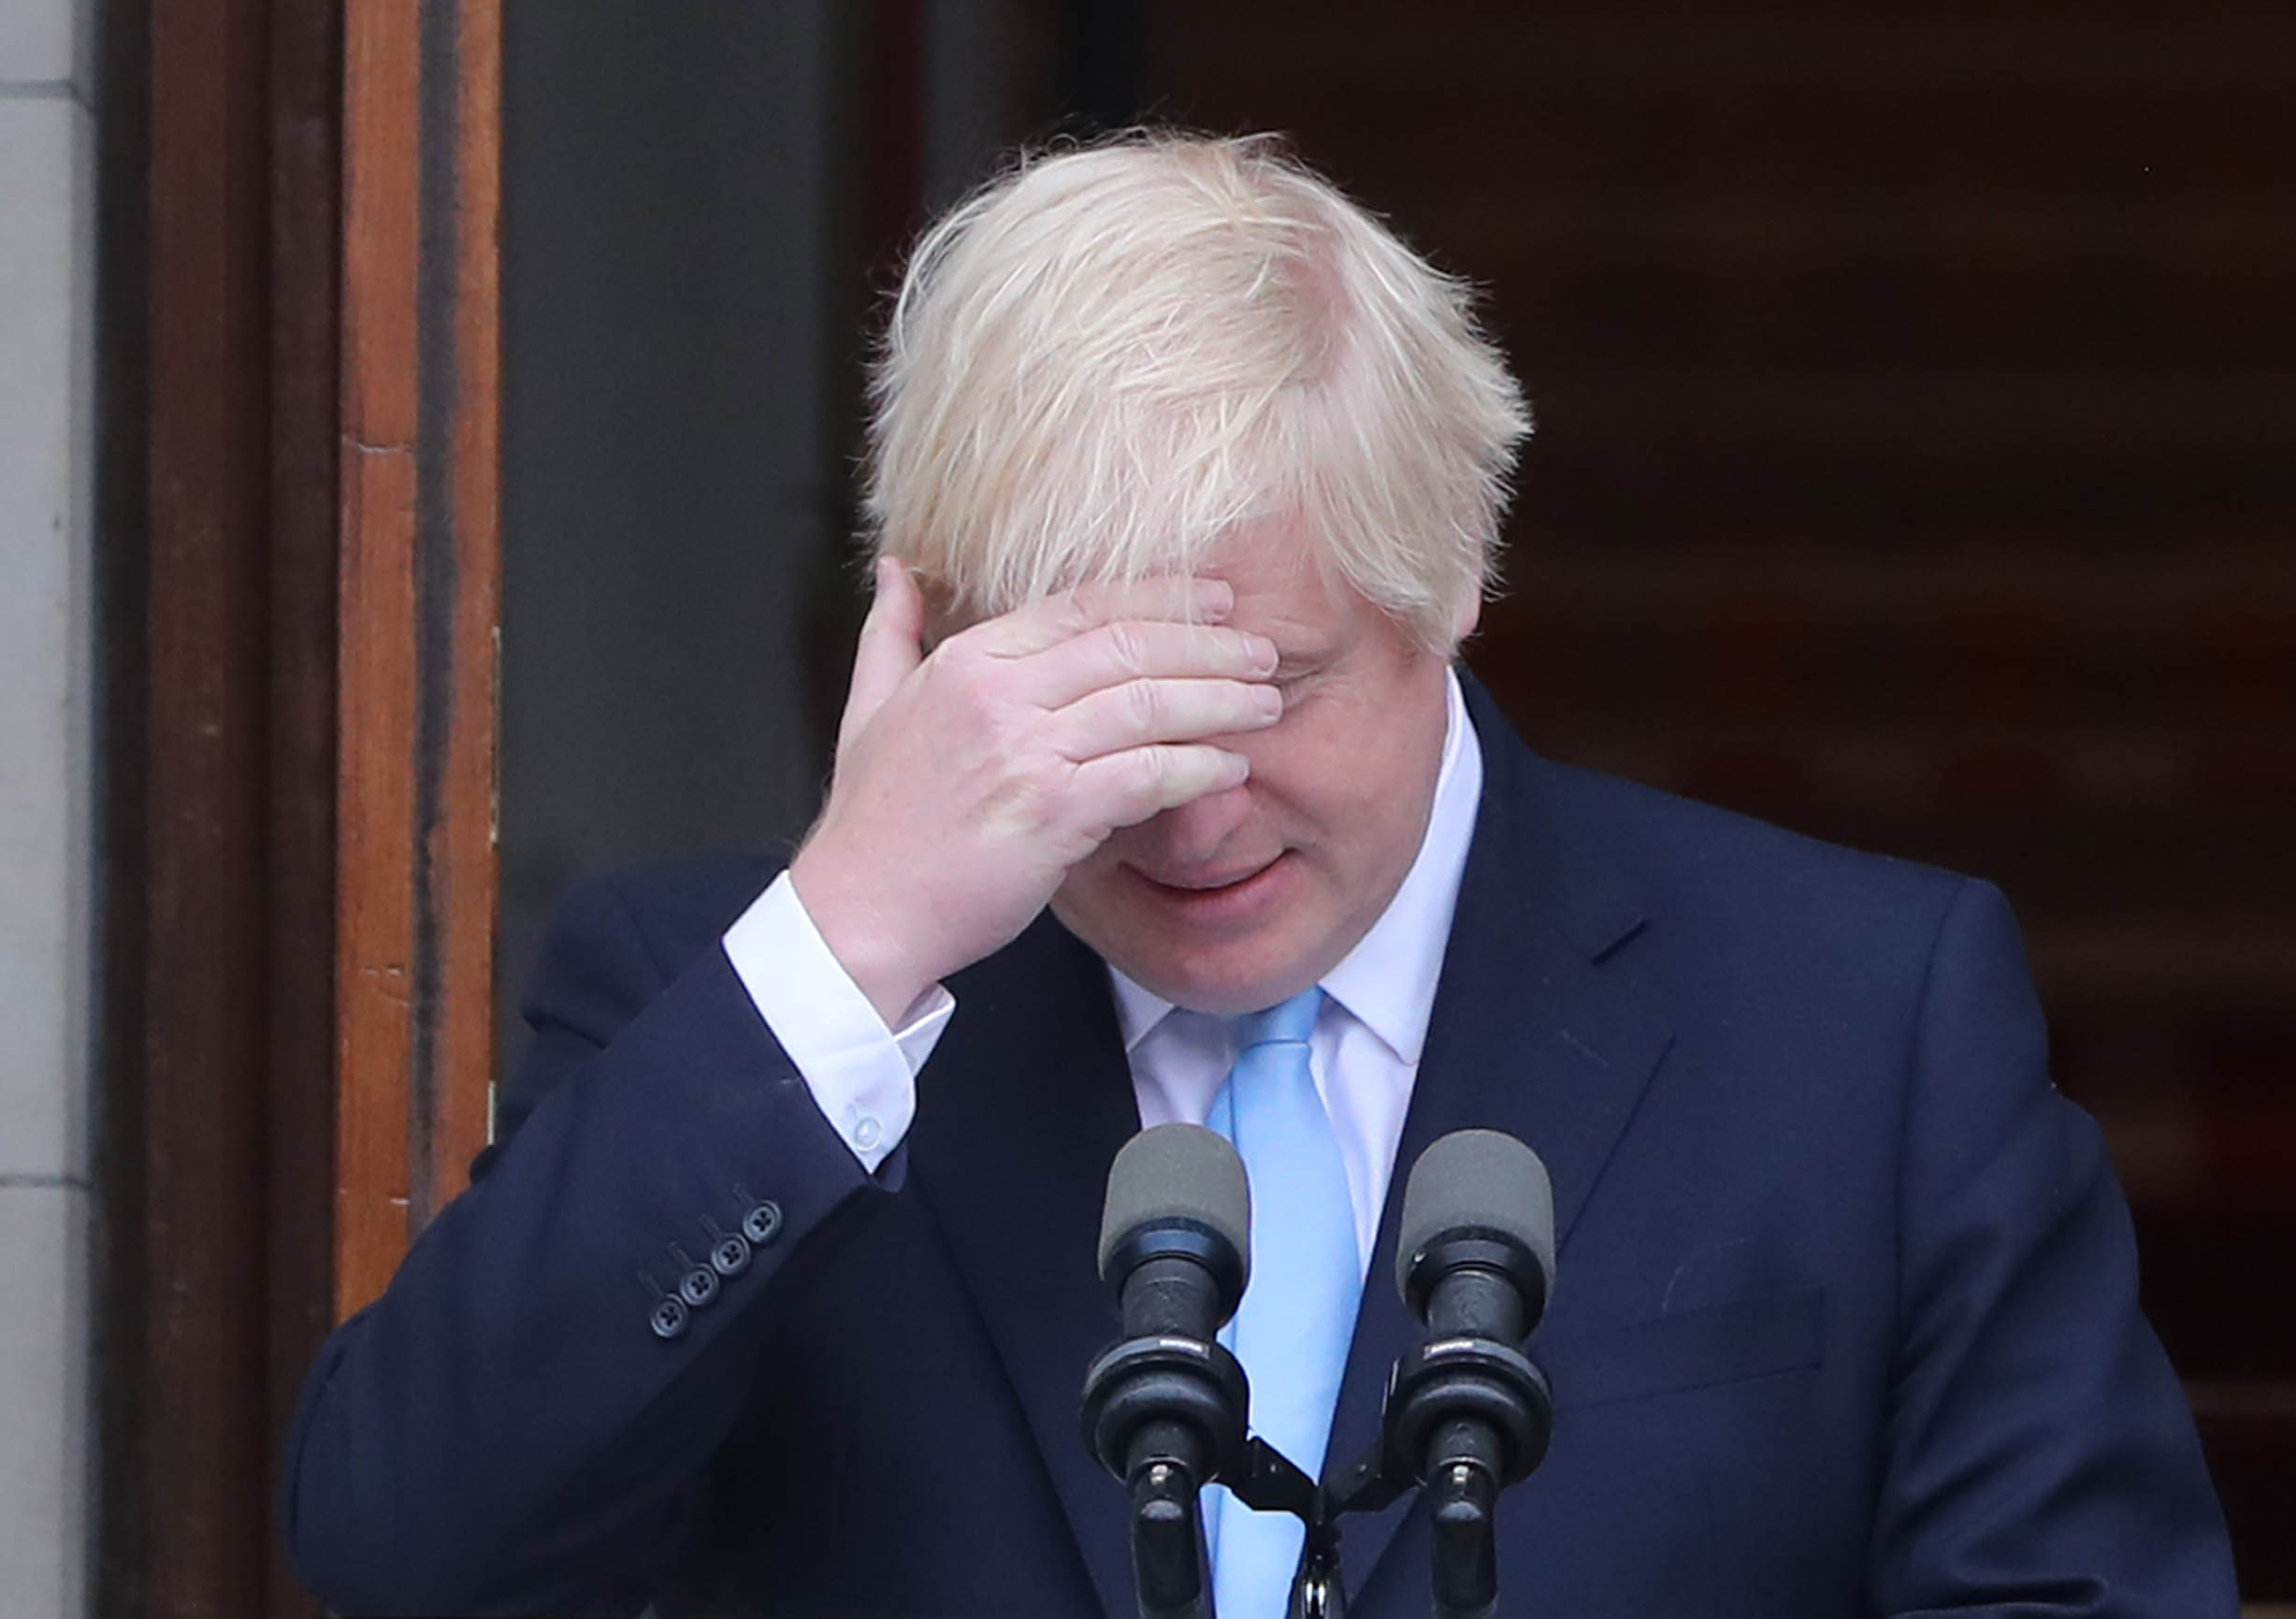 Brexit: British PM Boris Johnson loses second bid for early election